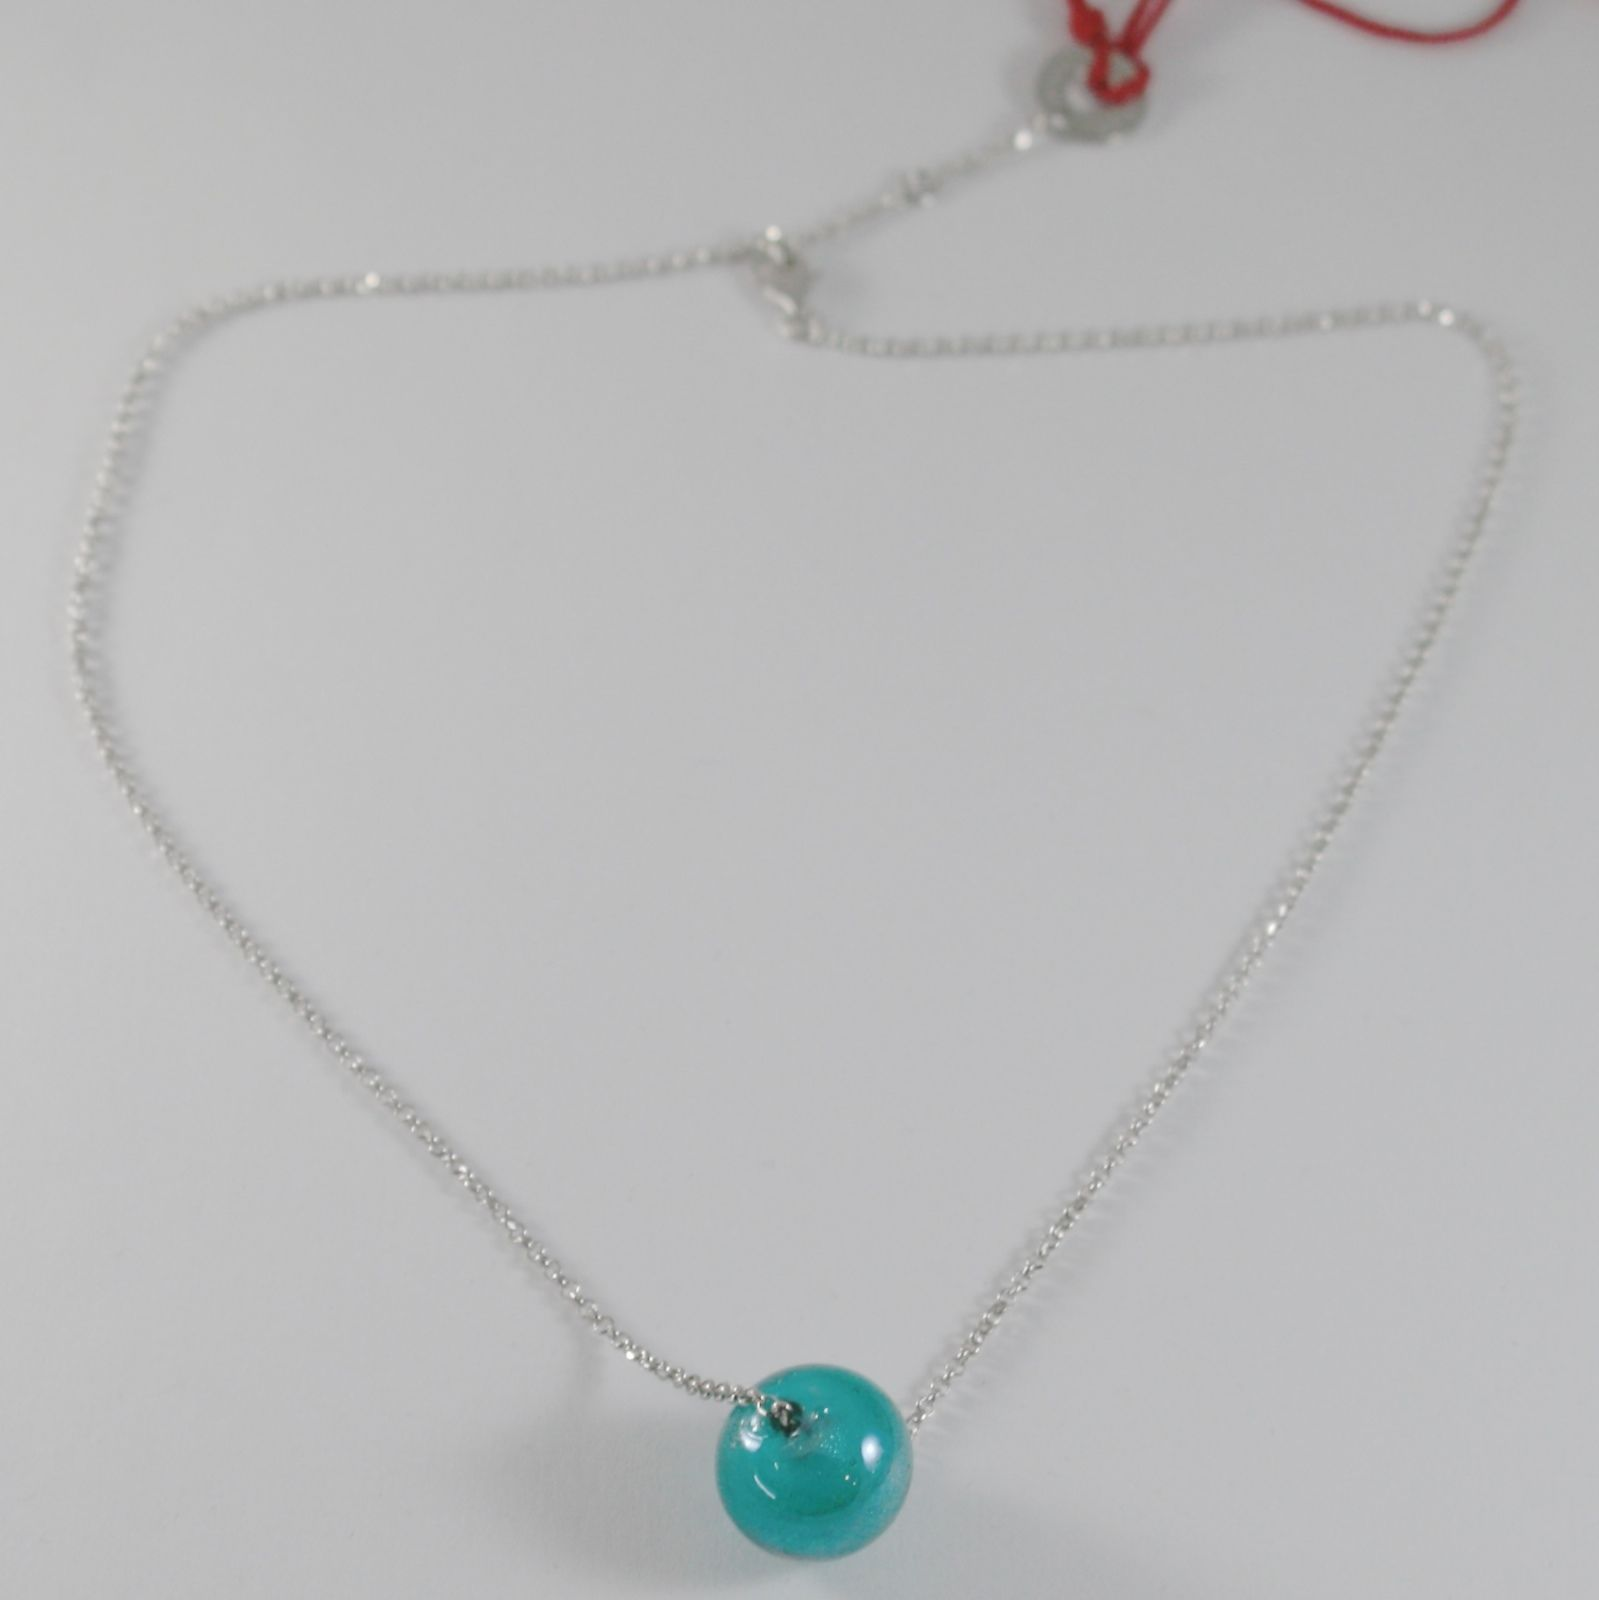 ANTICA MURRINA VENEZIA TURQUOISE SPHERE BALL 15 MM NECKLACE, 50 CM, 20 INCHES